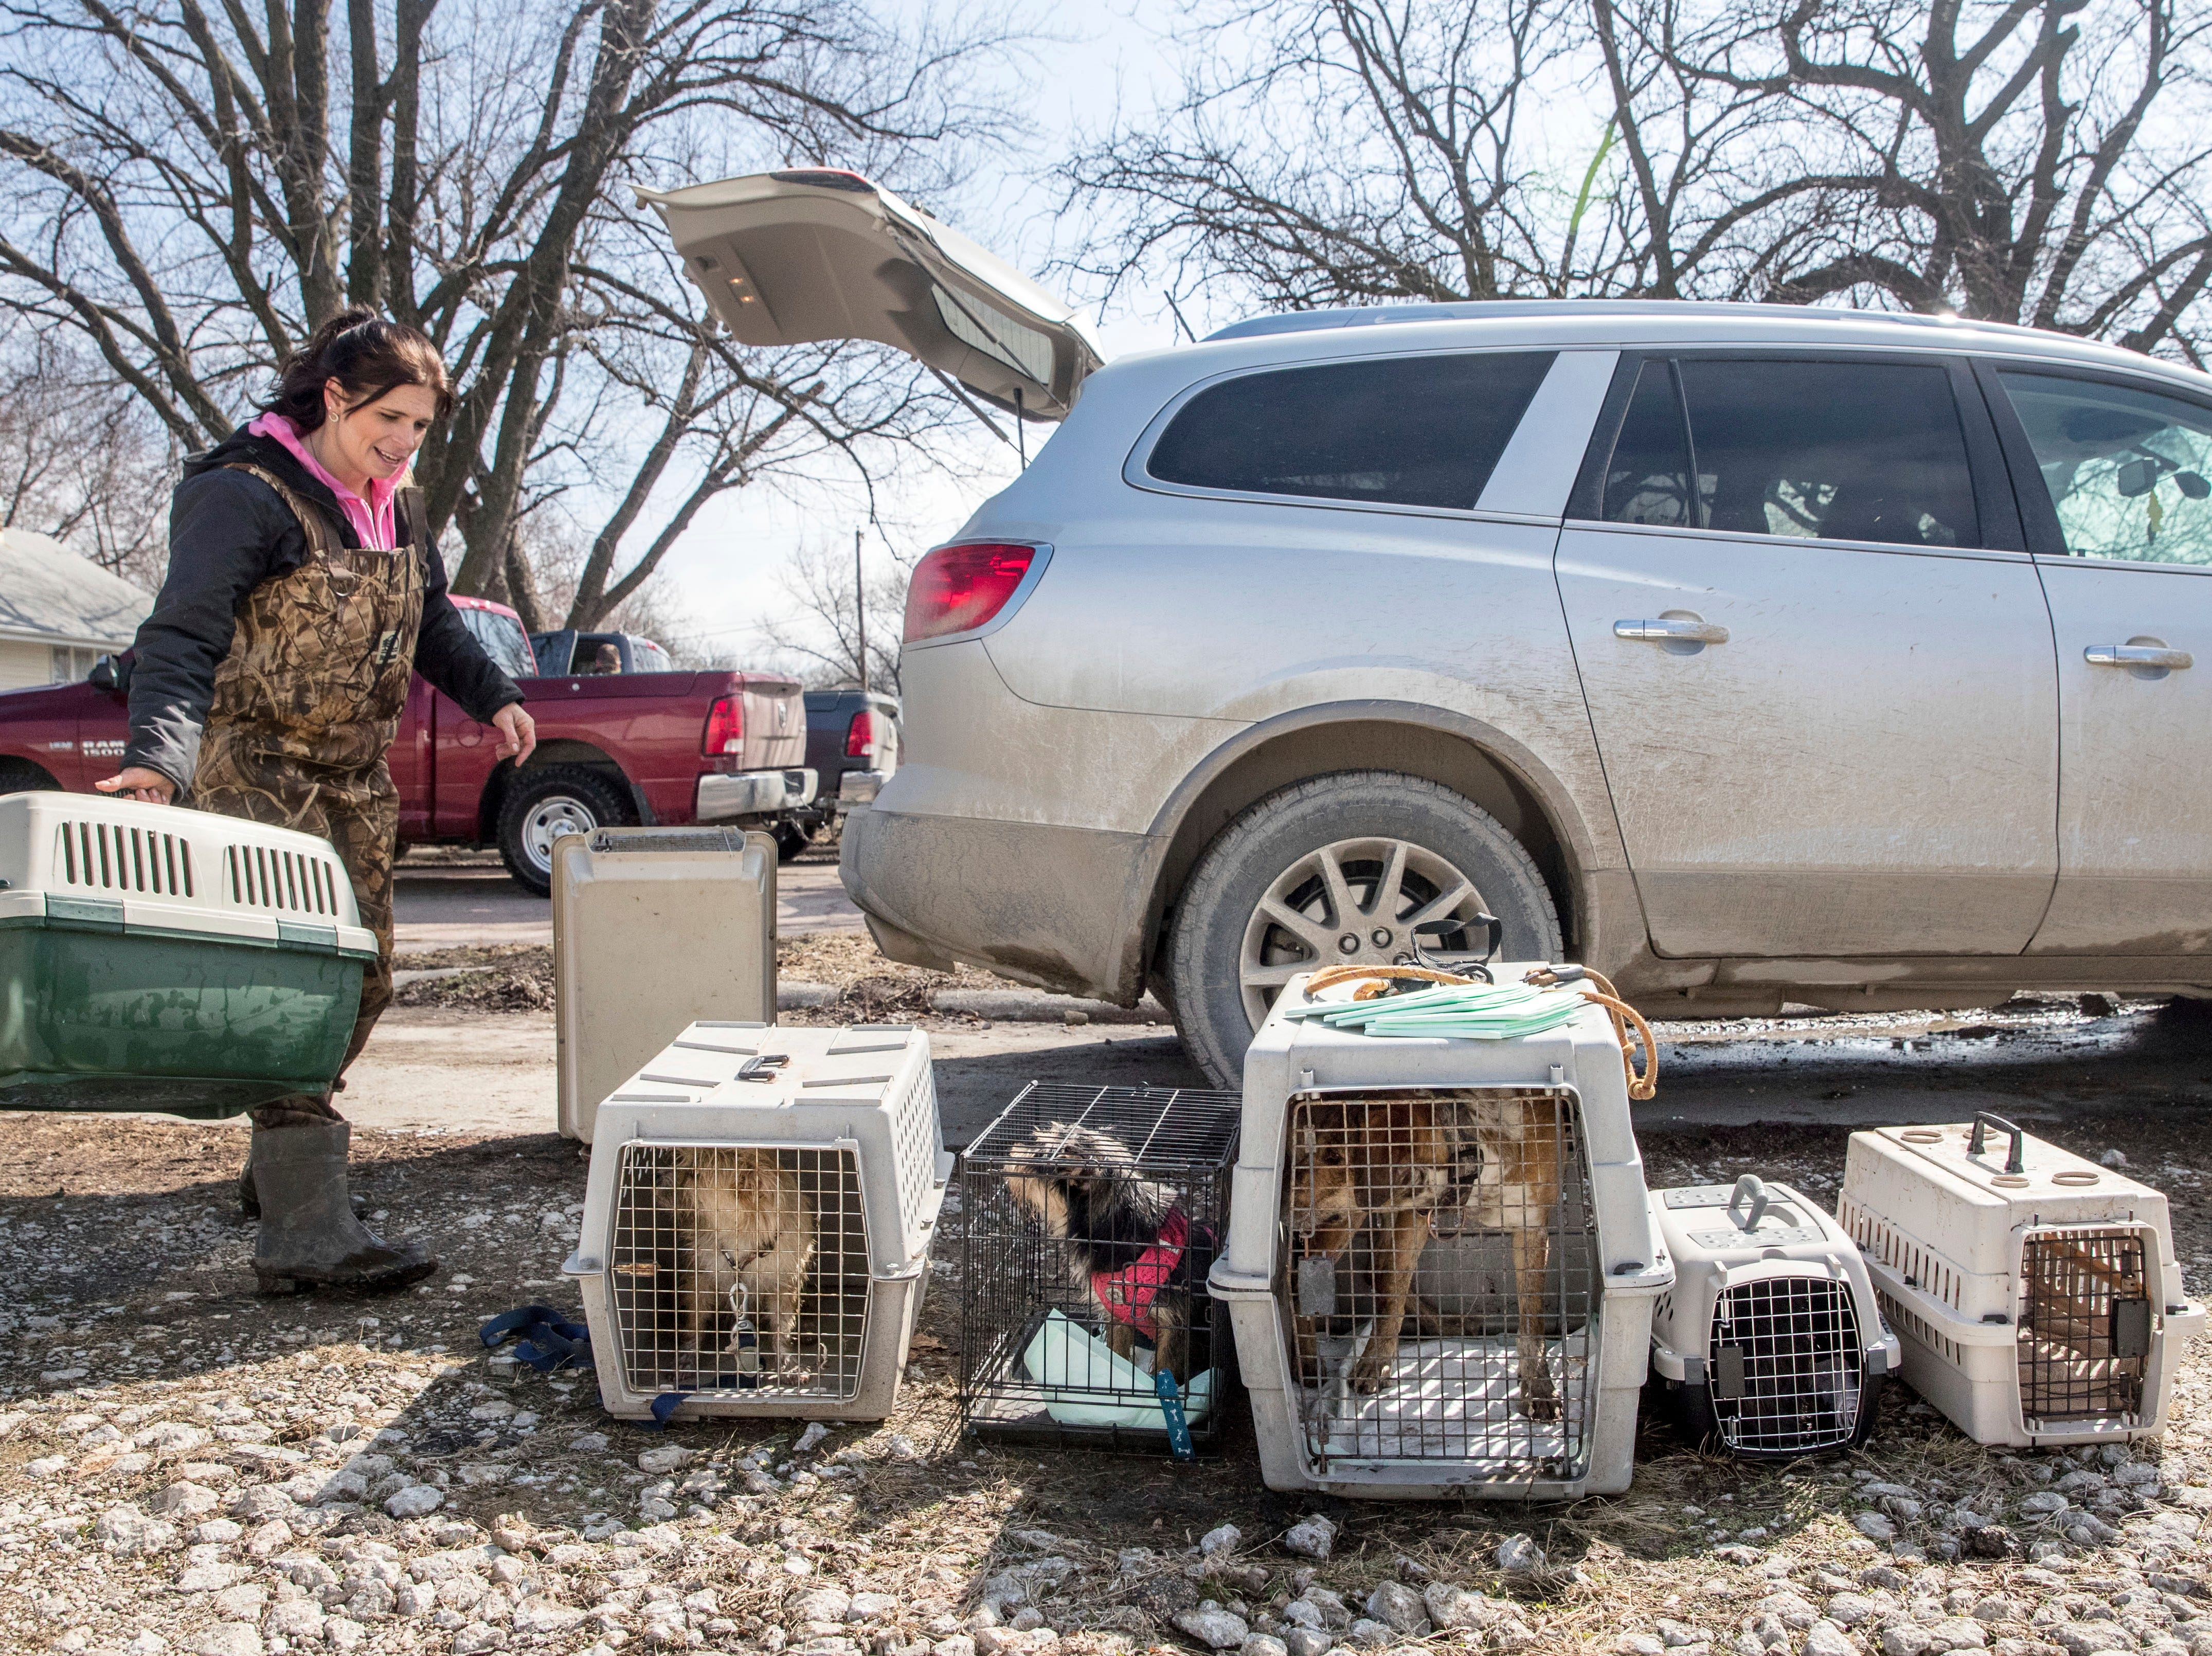 Melissa Lenagh waits for the owners of the pets she rescued from floodwaters to show up Wednesday, March 20, 2019, in Hamburg, Iowa. As some communities along the Missouri River start to shift their focus to flood recovery after a late-winter storm, residents in two Iowa cities are still in crisis mode because their treatment plants have shut down and they lack fresh water. (Chris Machian/Omaha World-Herald via AP)